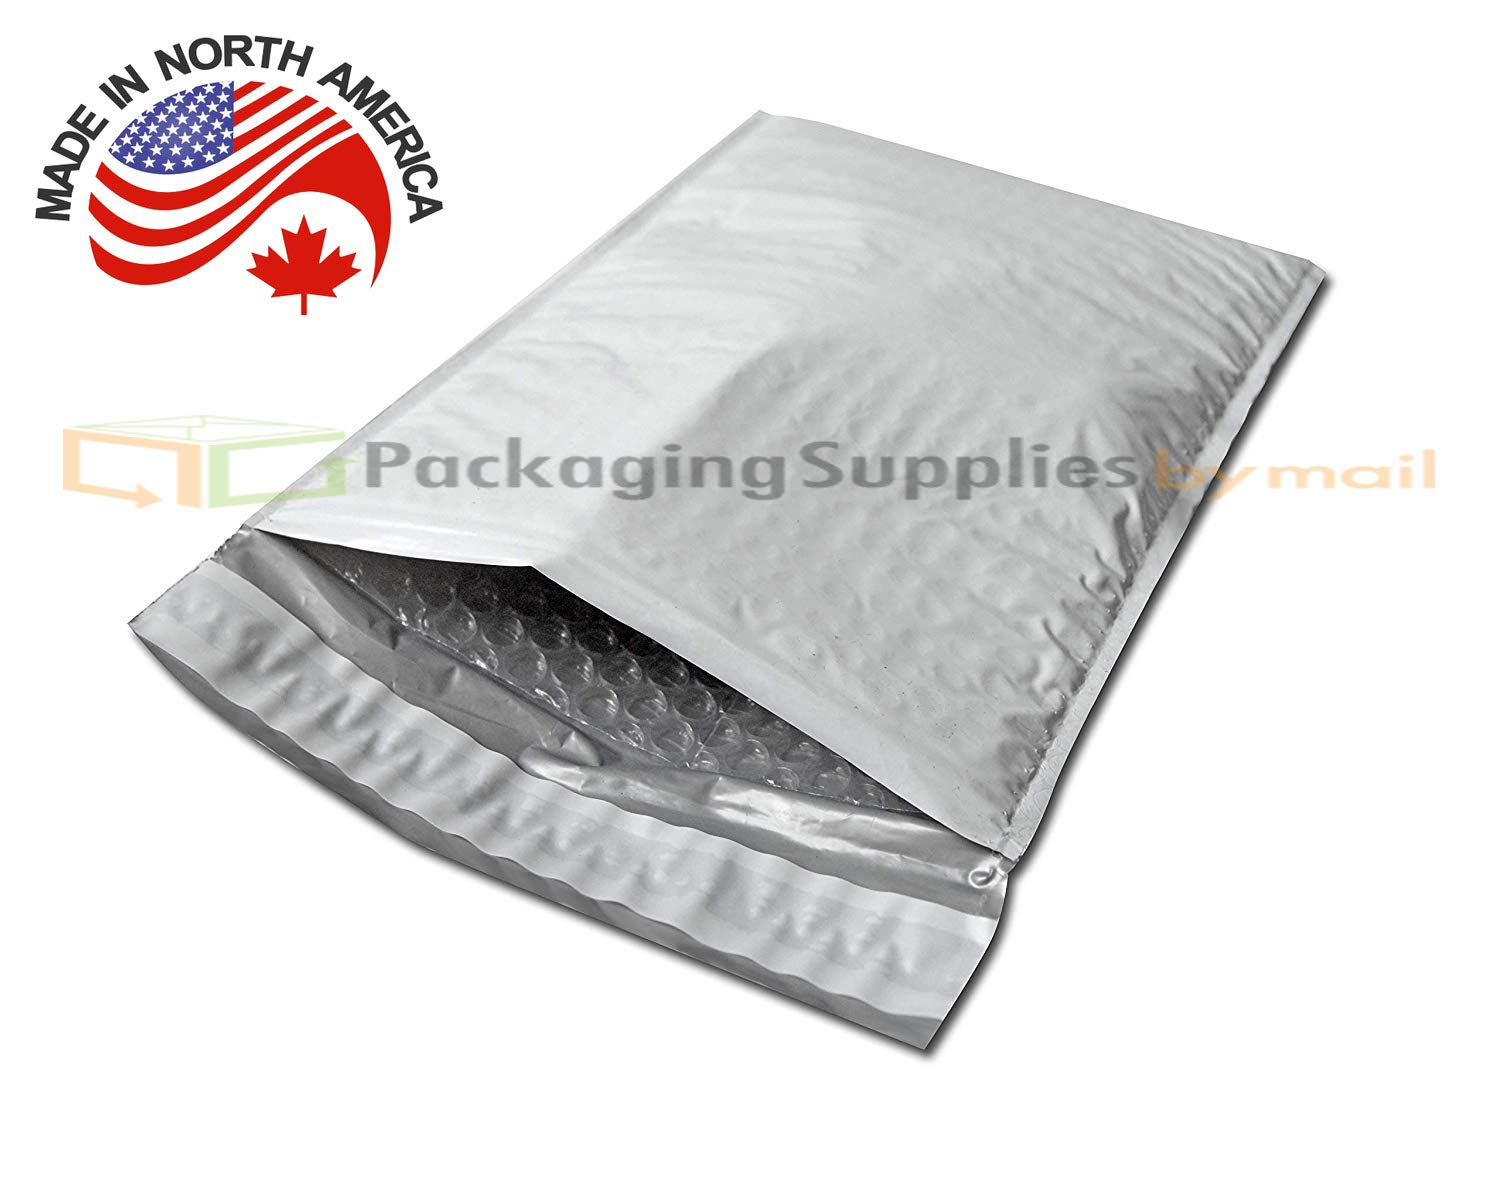 White Peel /& Seal 8.5 x 14.5 Inch 8.5x14.5 Bubble Poly Mailer Padded Envelopes 100 Pack